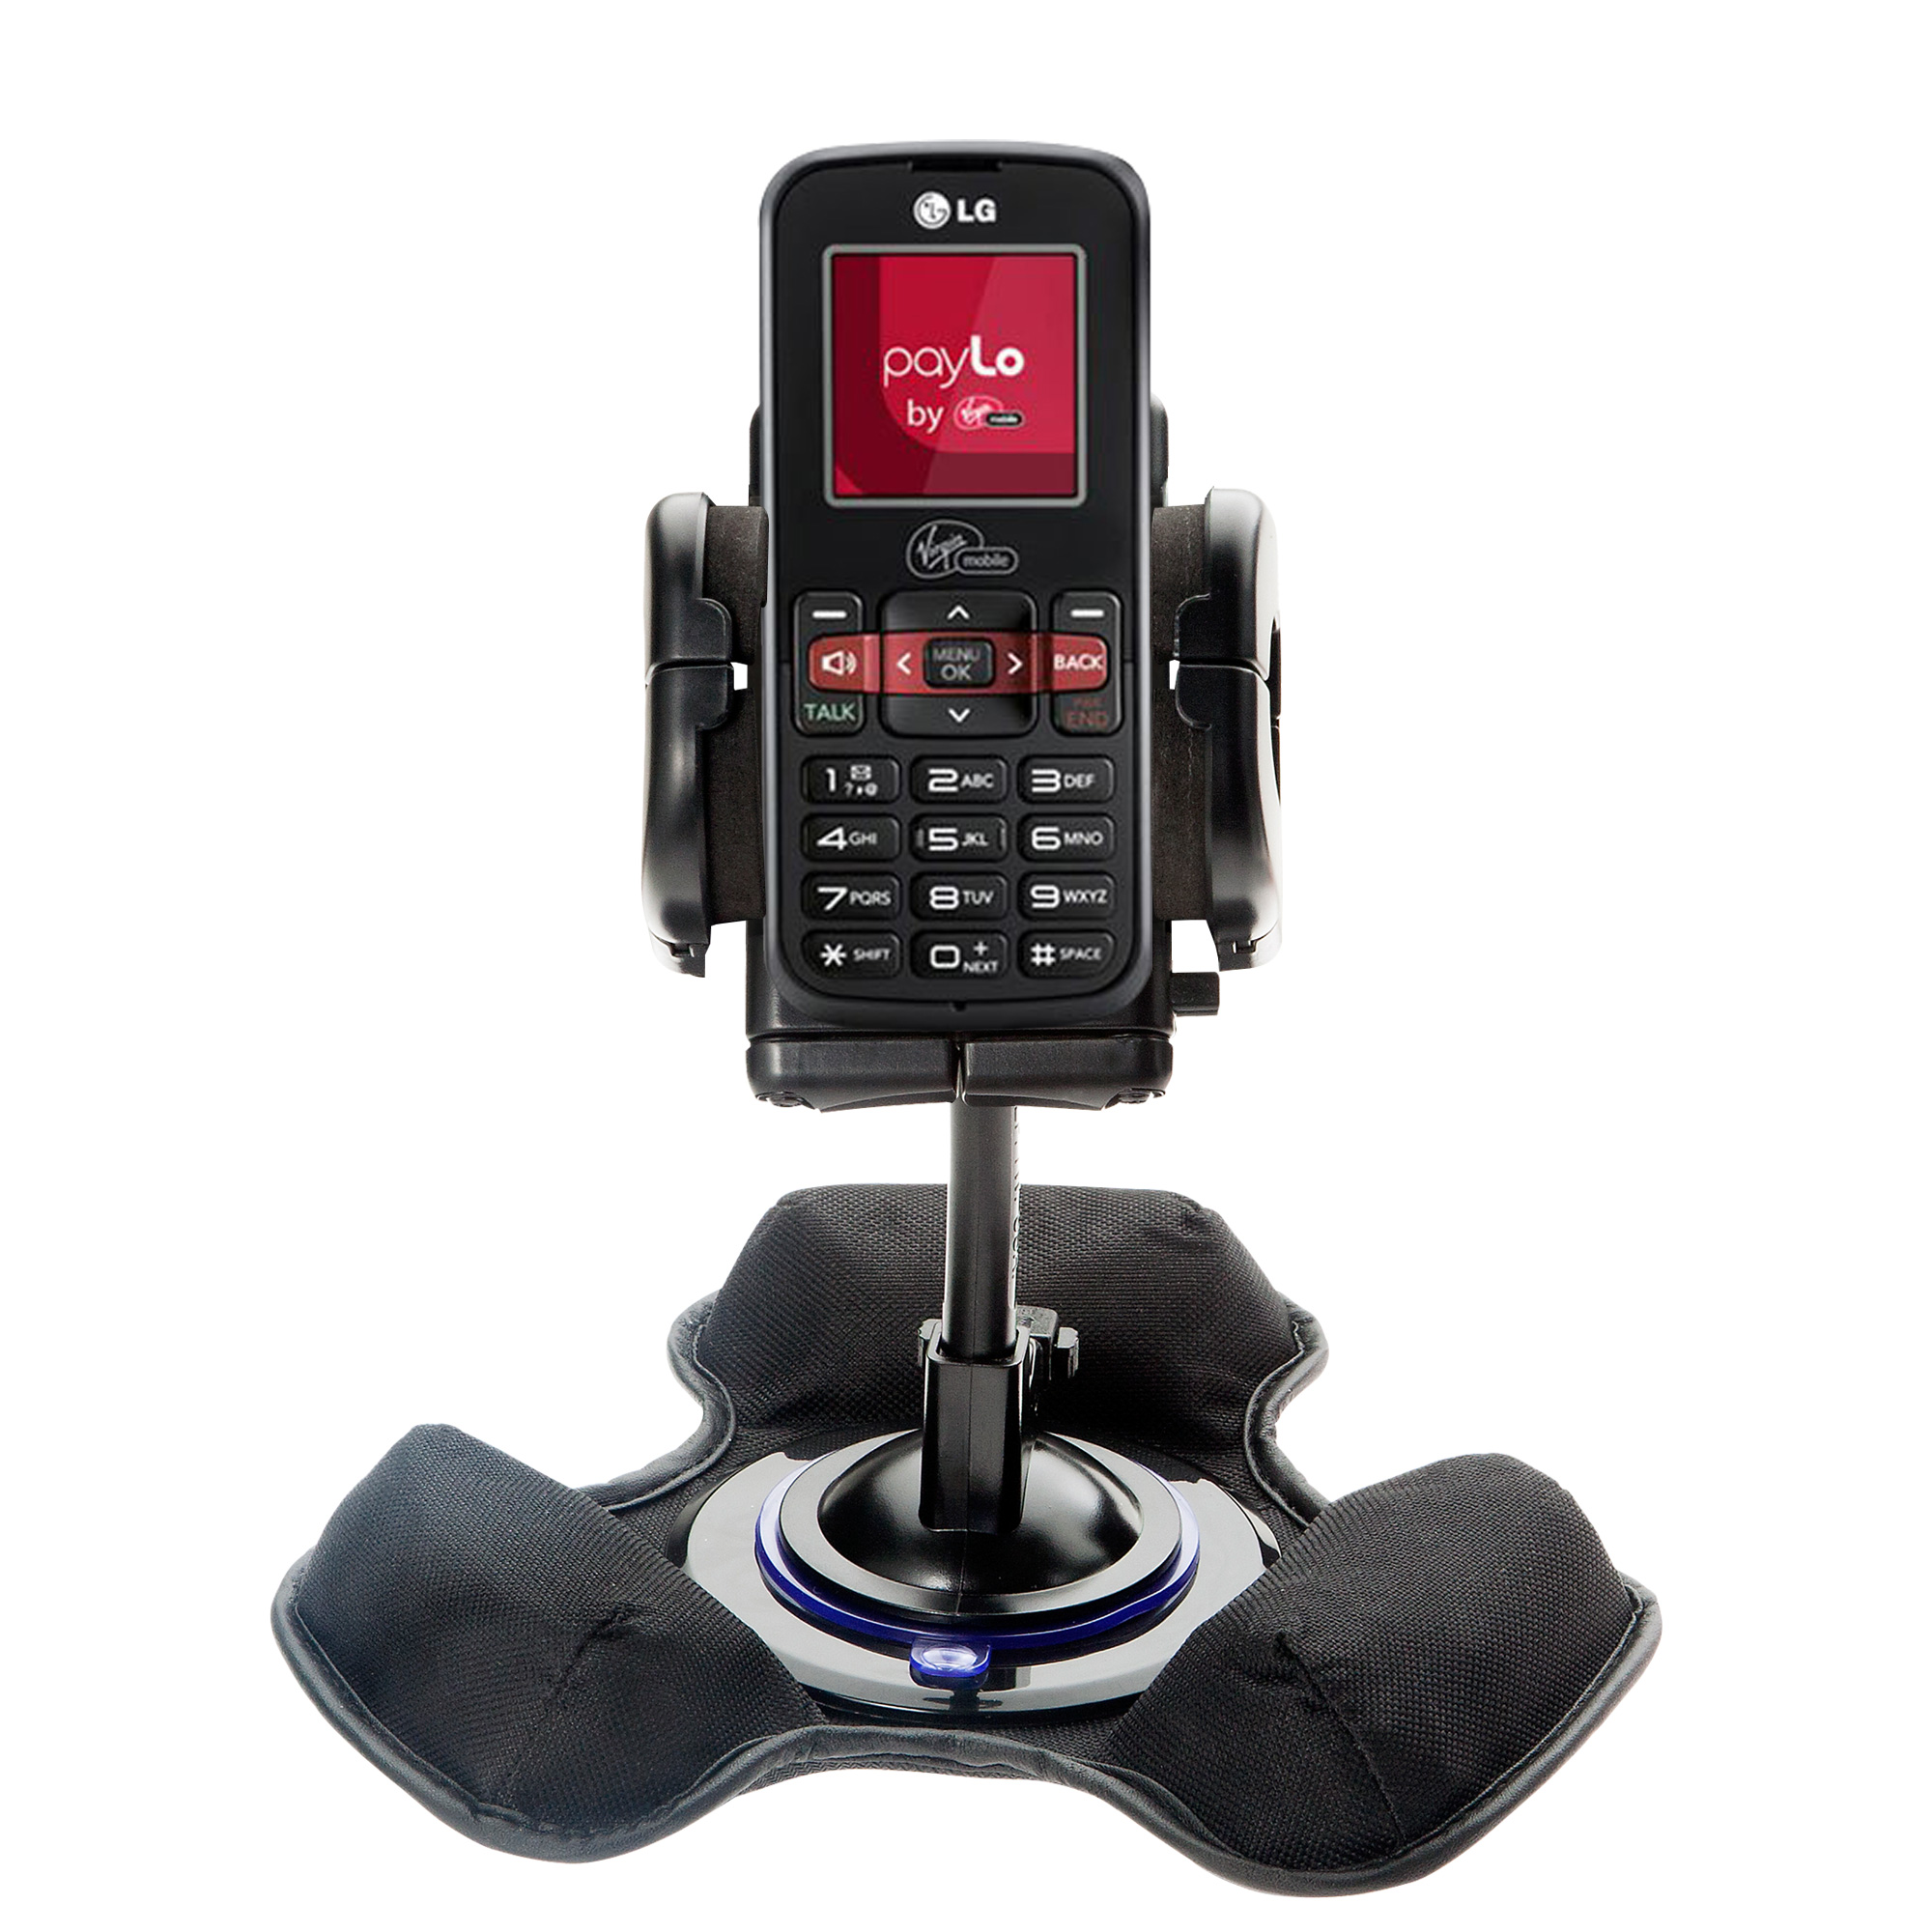 Dash and Windshield Holder compatible with the LG VM101